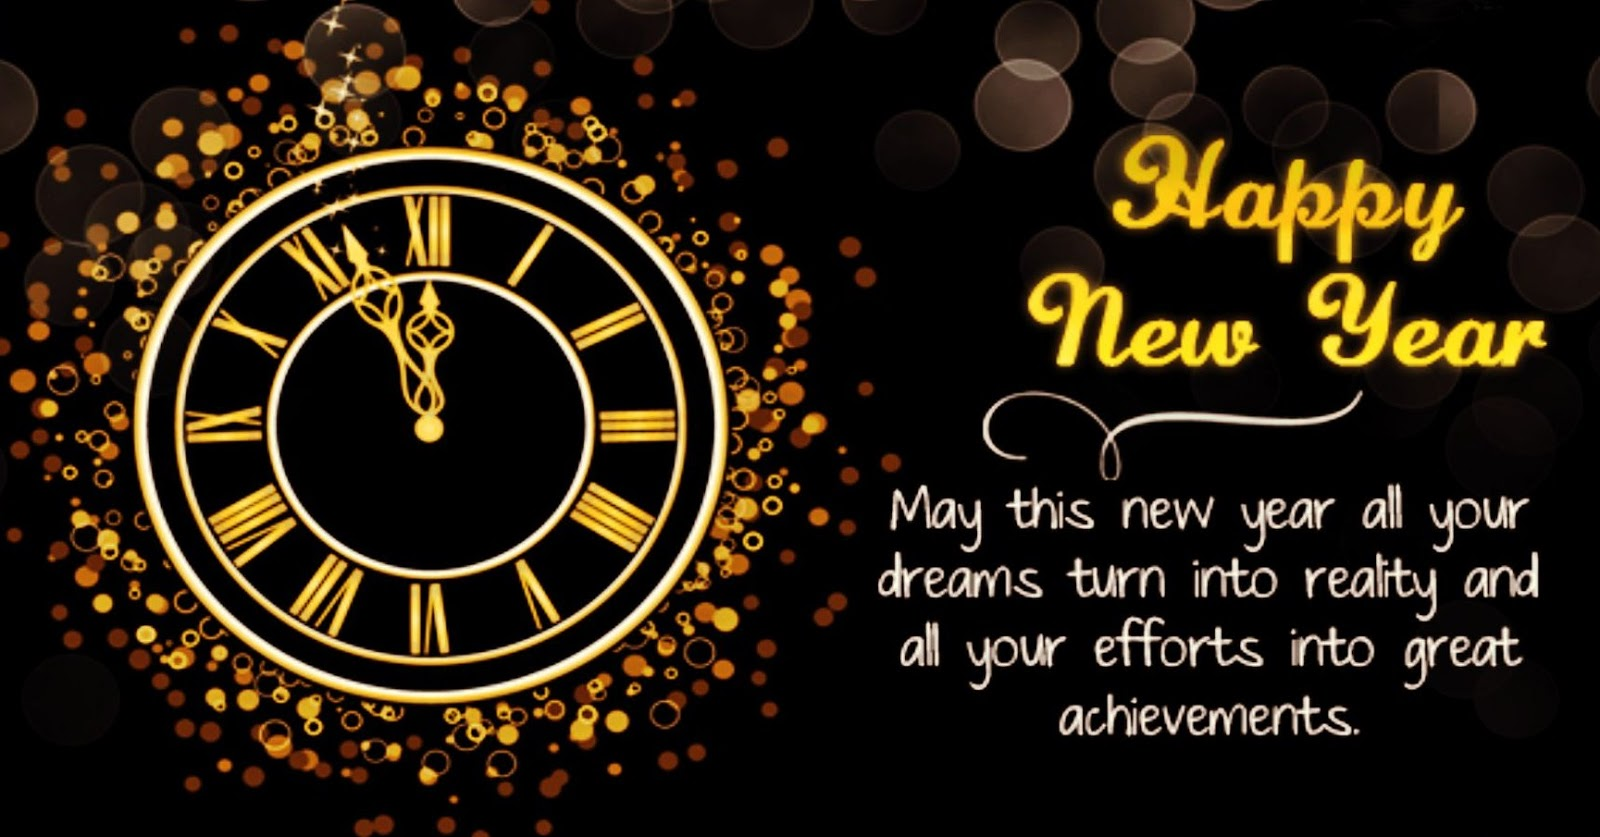 Happy New Year 2014 Quotes Wishes Wallpapers · New Year 2014 Wishes Cards Facebook Status Wallpapers